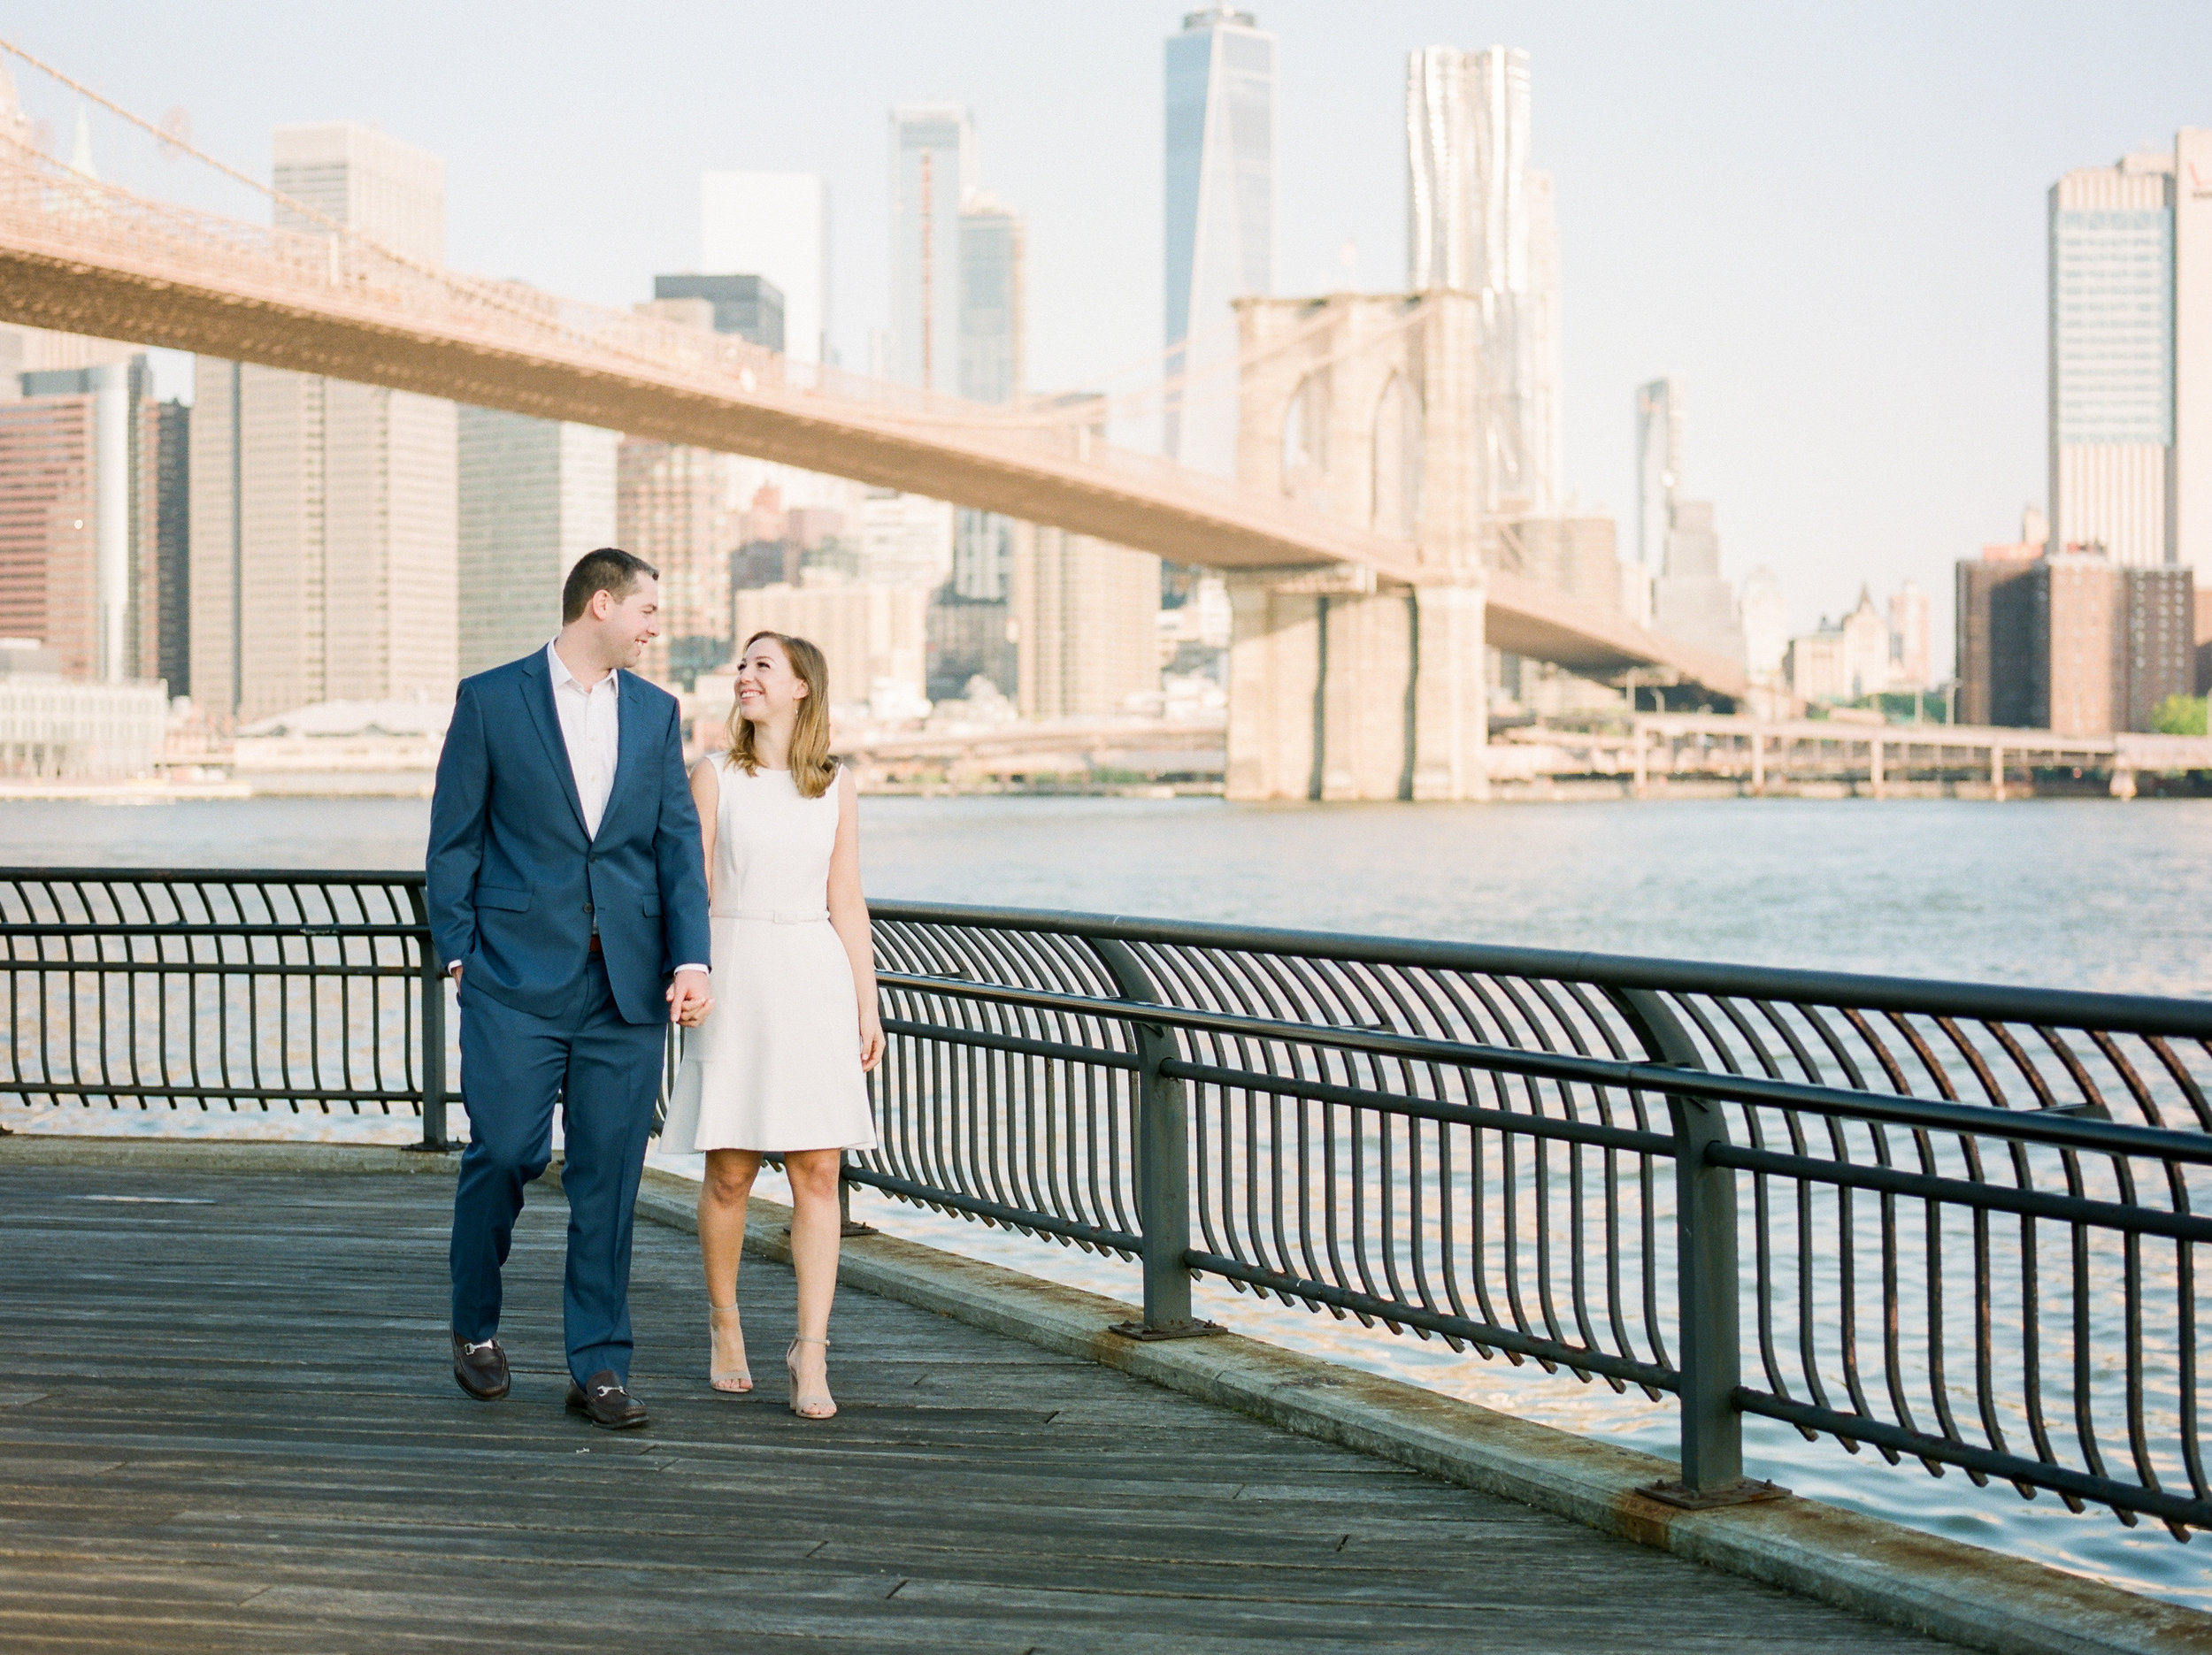 Dumbo-Engagement-Session-Asher-Gardner8.jpg